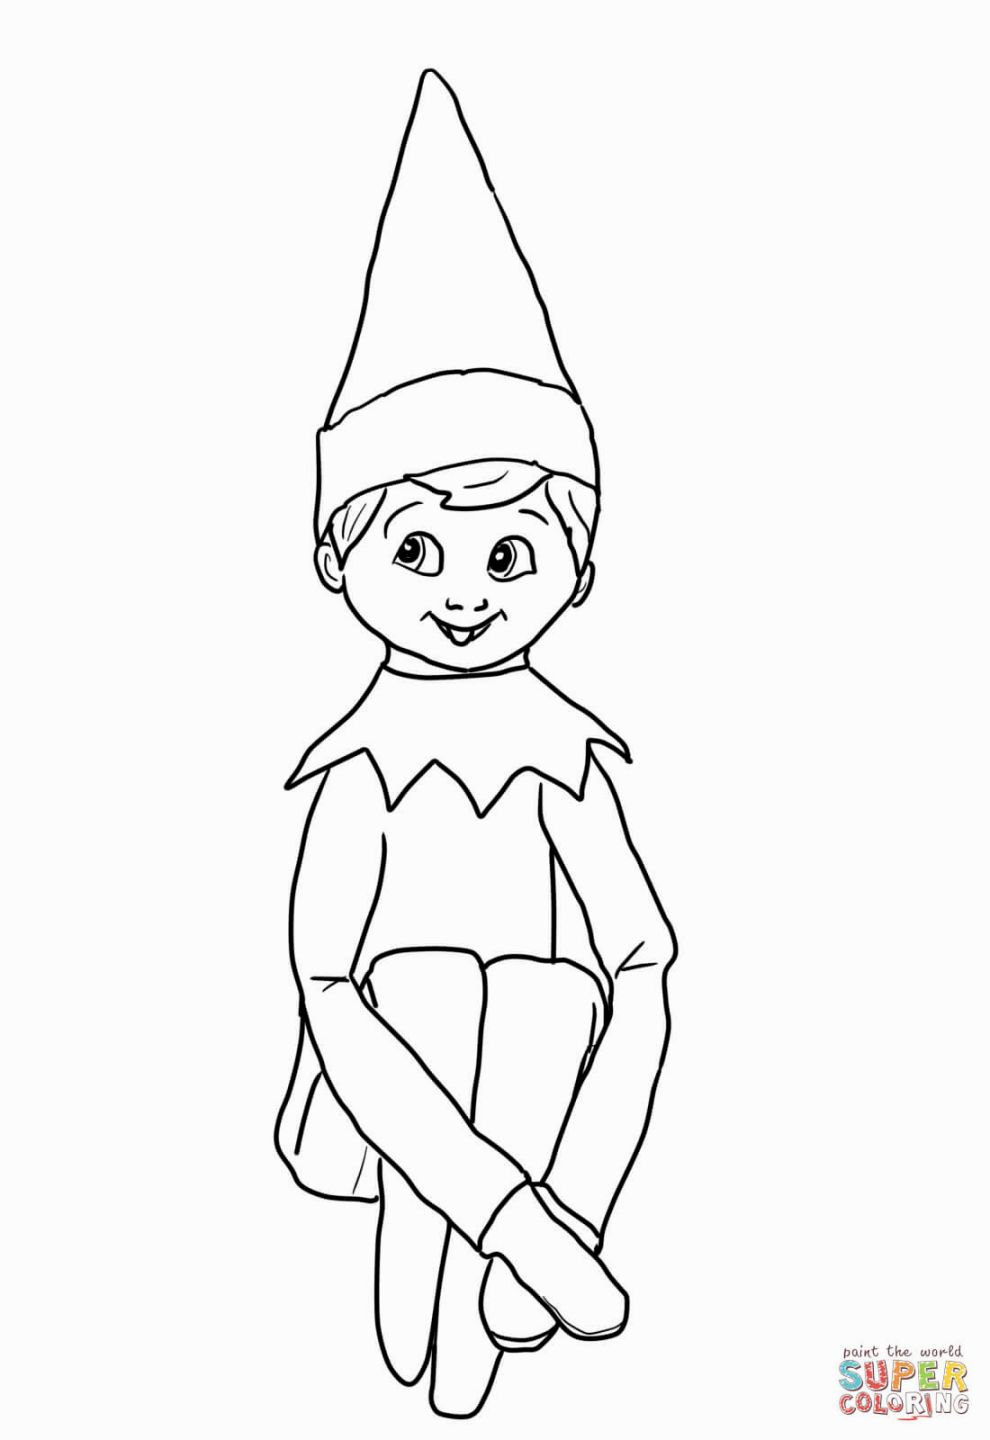 Elf On The Shelf Coloring | Coloring Pages | Pinterest